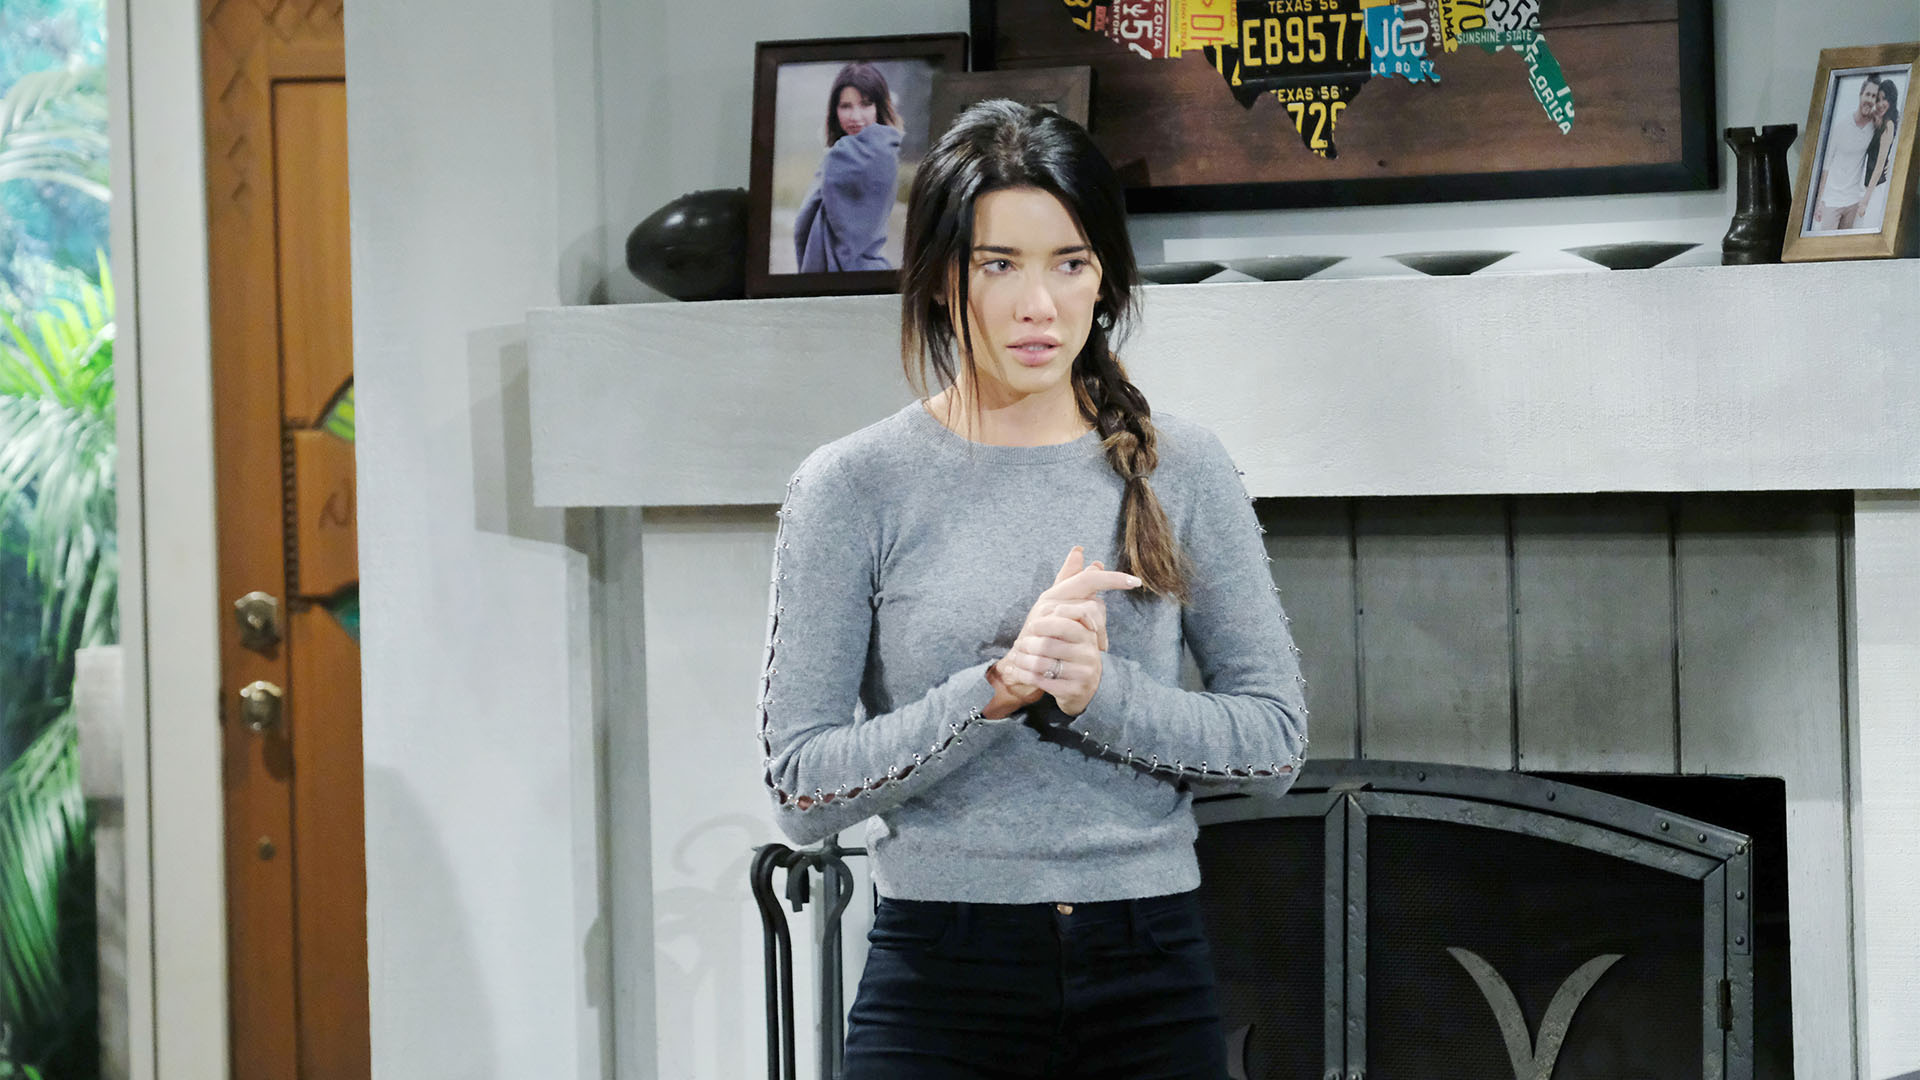 Consumed with guilt, Steffy makes a pact with Dollar Bill to save her marriage to Liam.